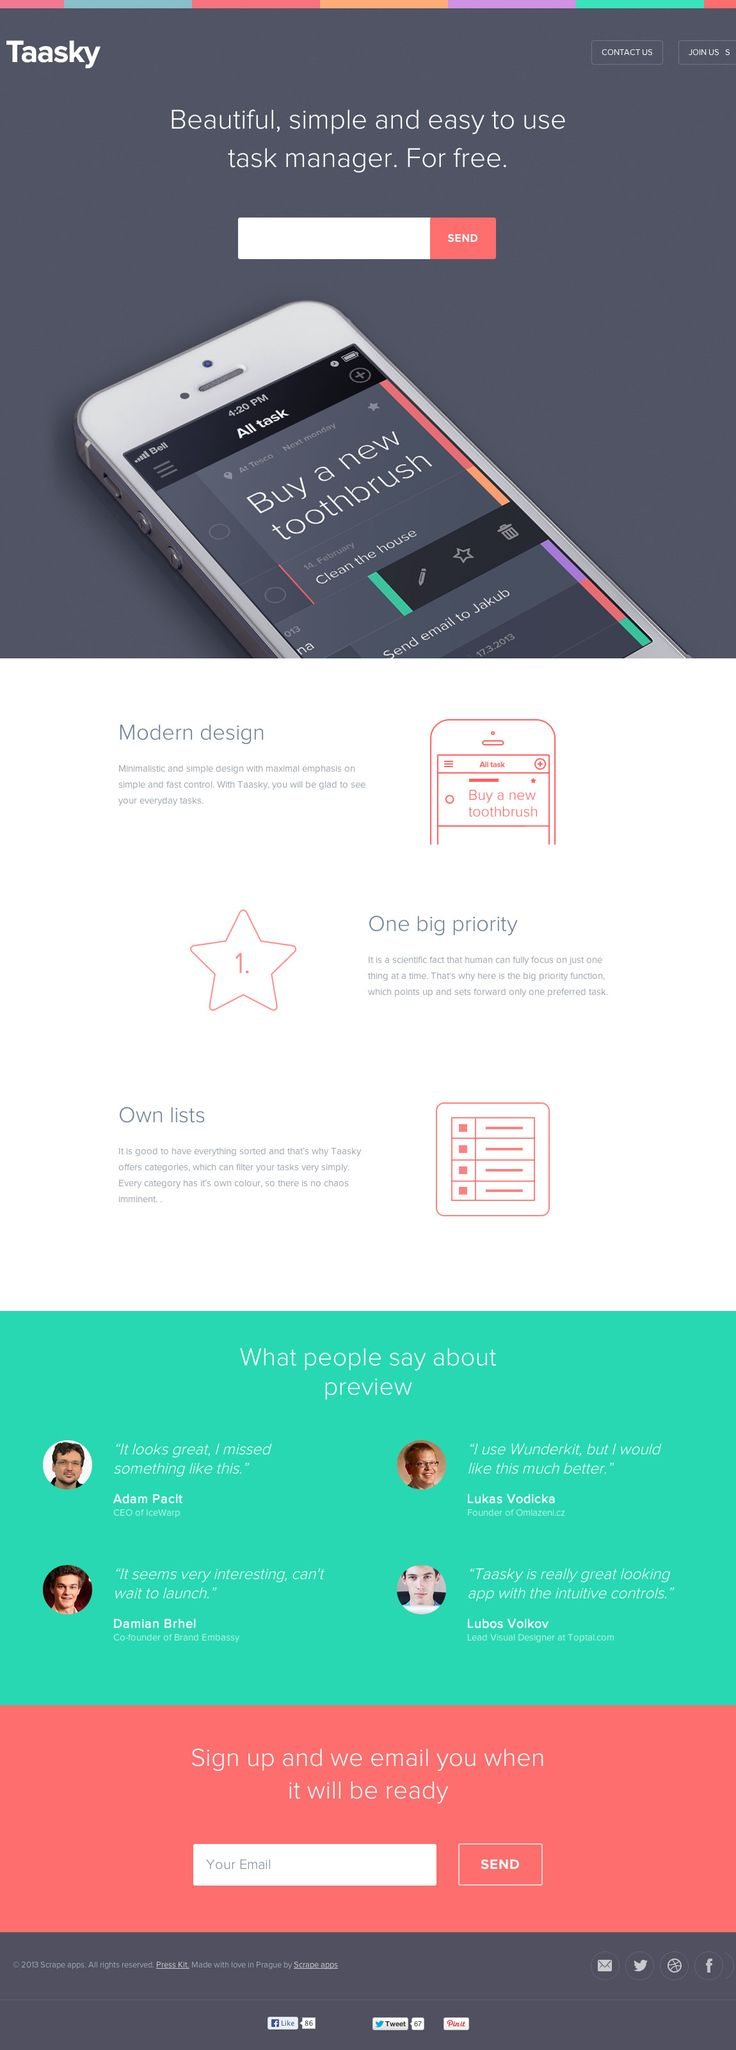 A gorgeously designed launching soon page for an upcoming to-do-list app with a clean minimal responsive layout.